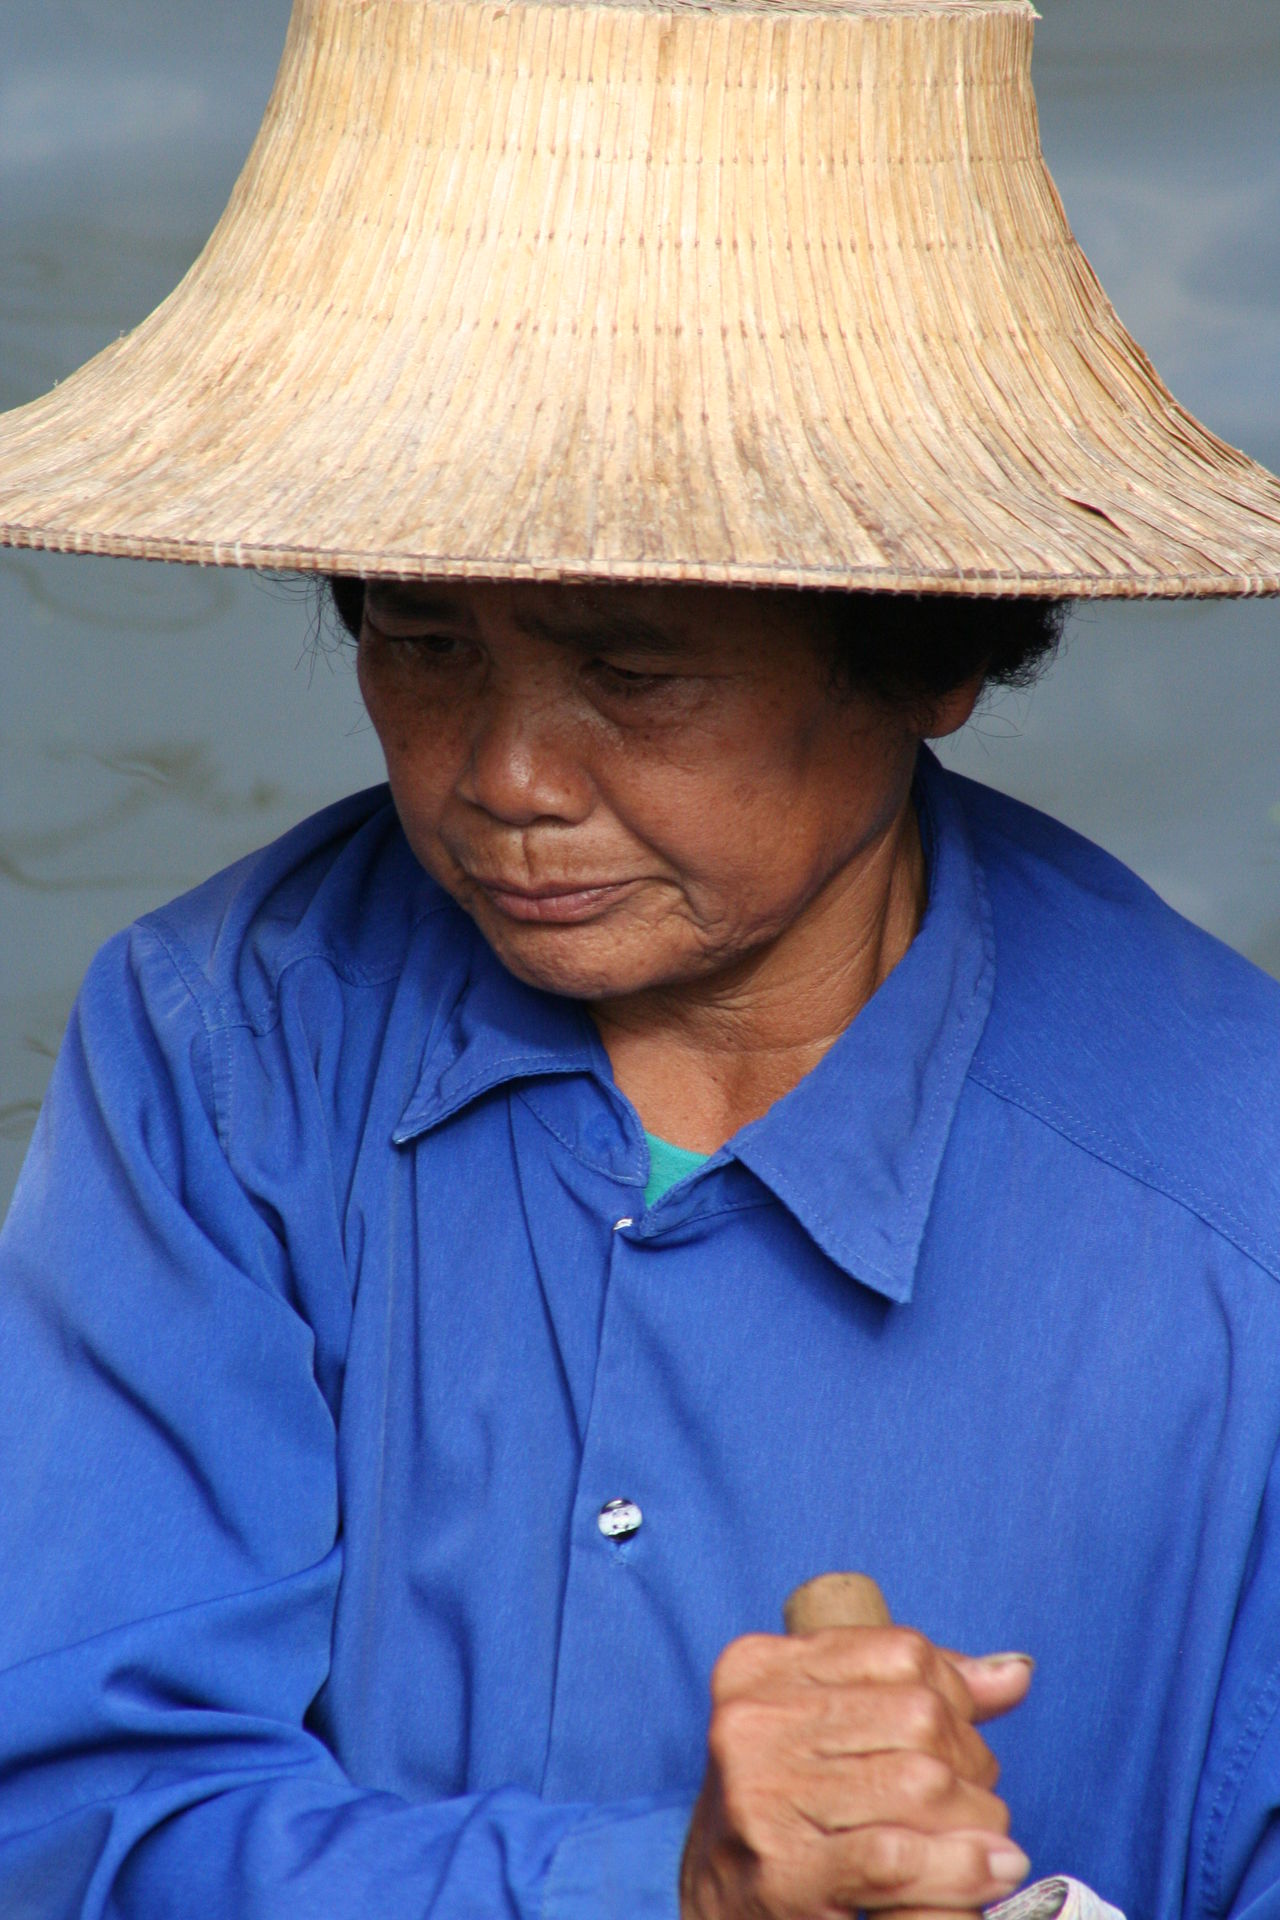 Blue Casual Clothing Close-up Day Floating Market Focus On Foreground Headshot Lifestyles Mature Adult Outdoors Person Portrait Senior Adult Thailand Up Close Street Photography